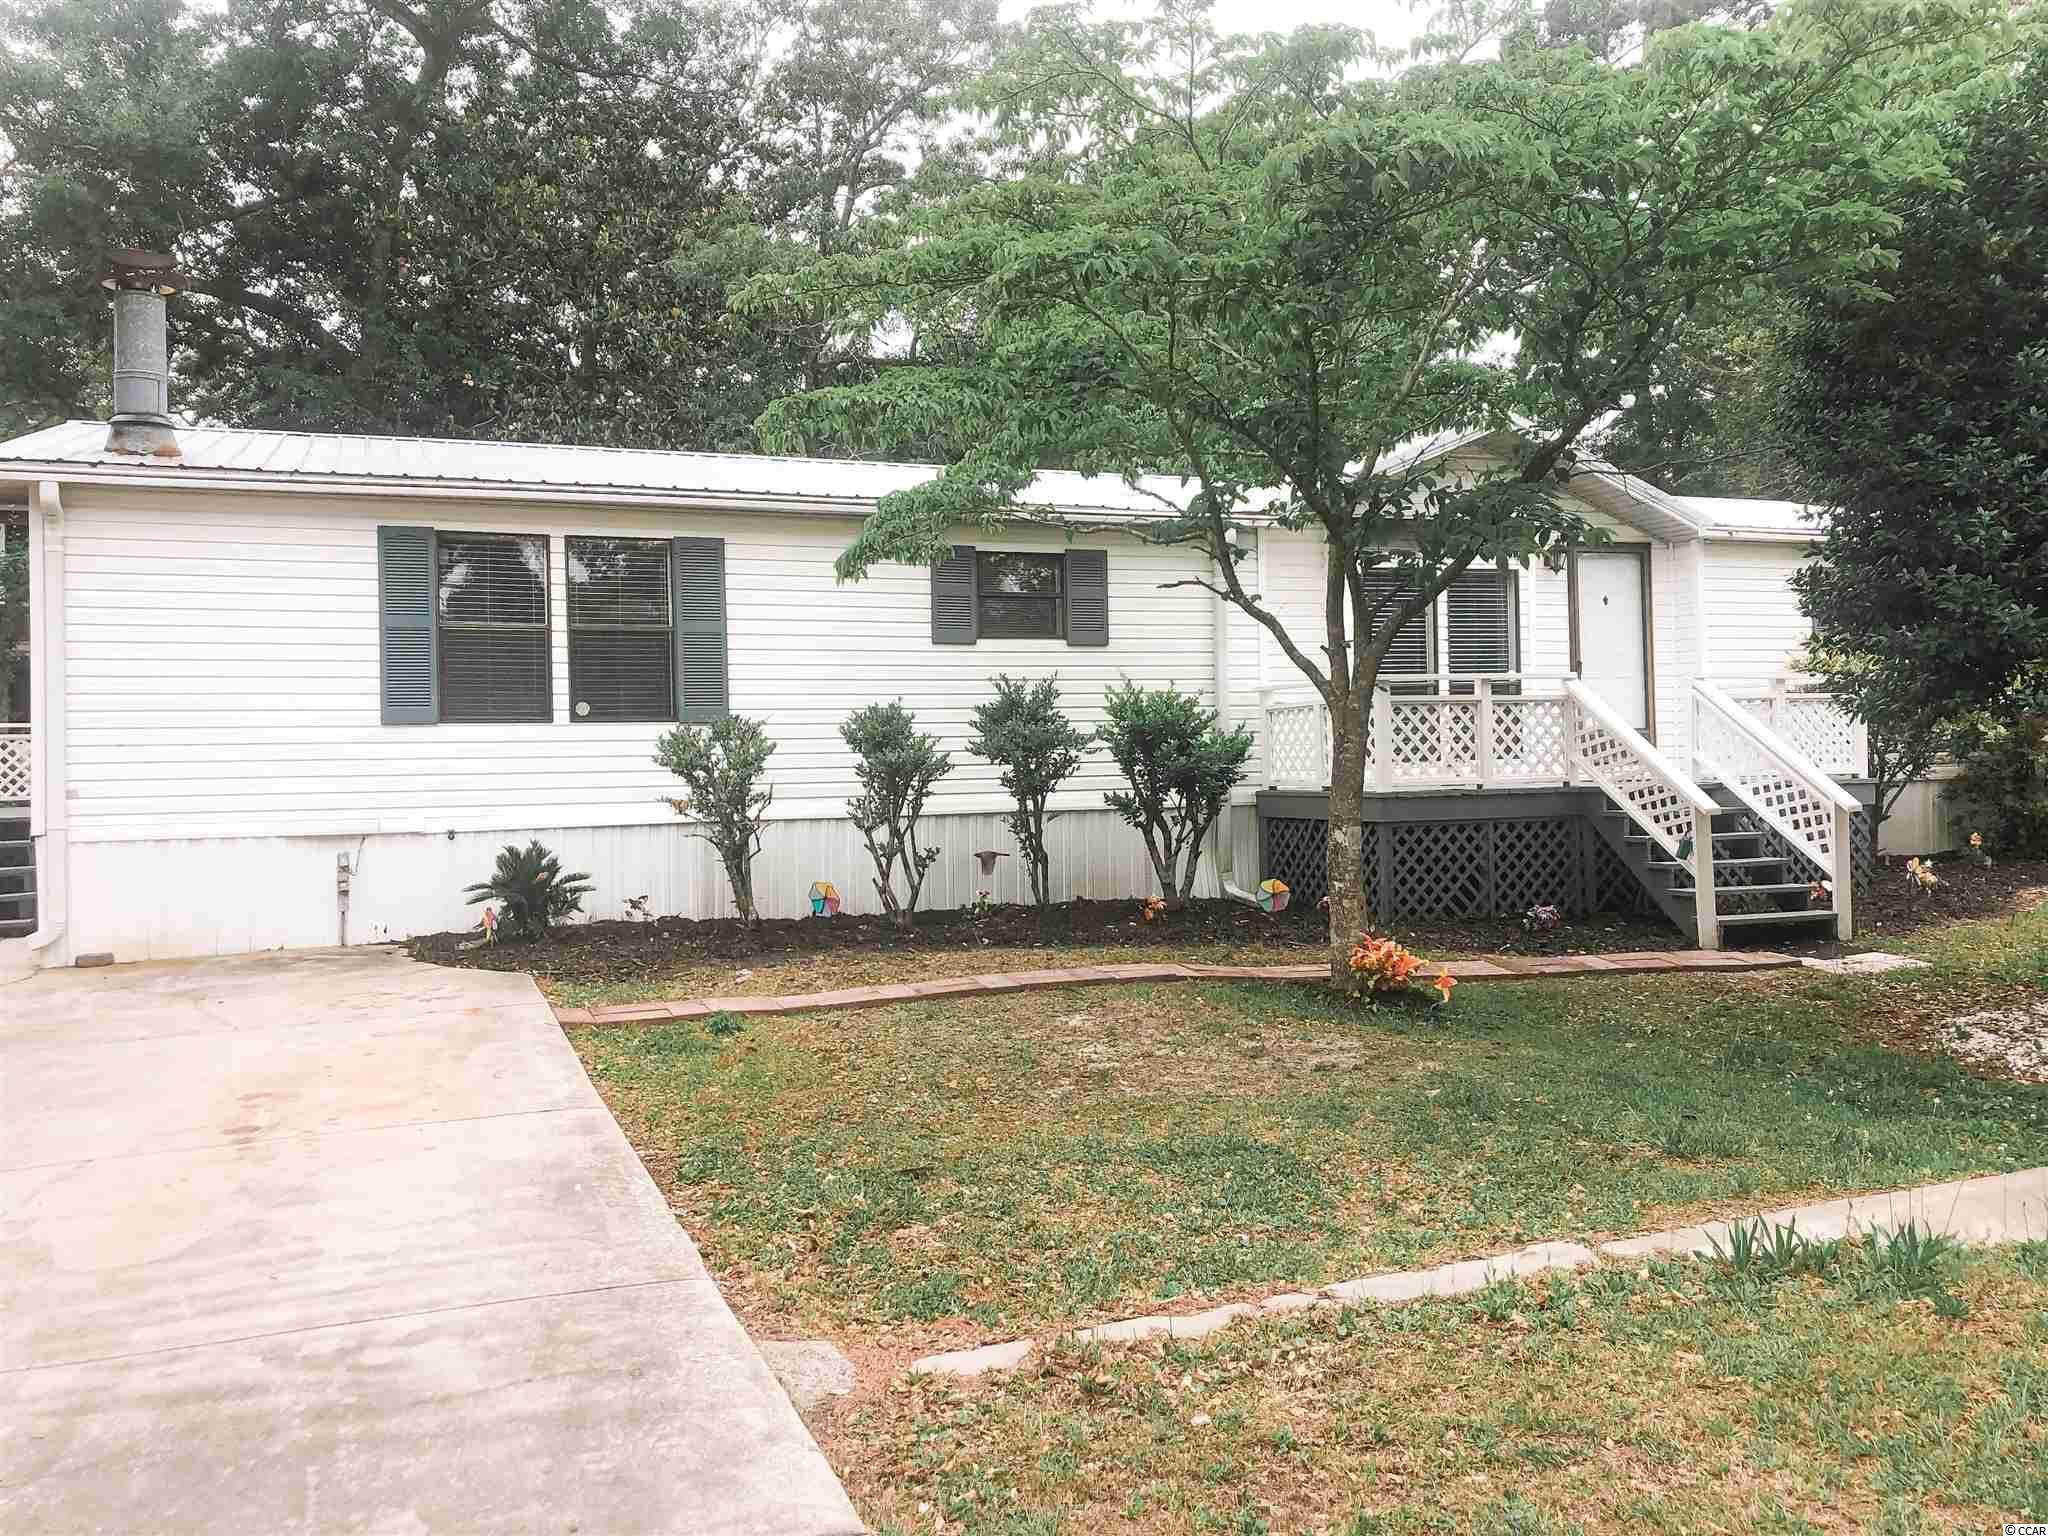 3 bedroom/2 bath - Living room, dining room, family room with fireplace, Kitchen offers a center island, breakfast bar, desk and a large laundry area.  spacious home with a one car carport and a nice storage shed, Two decks. Perfect location less than 5 minute to the beach.